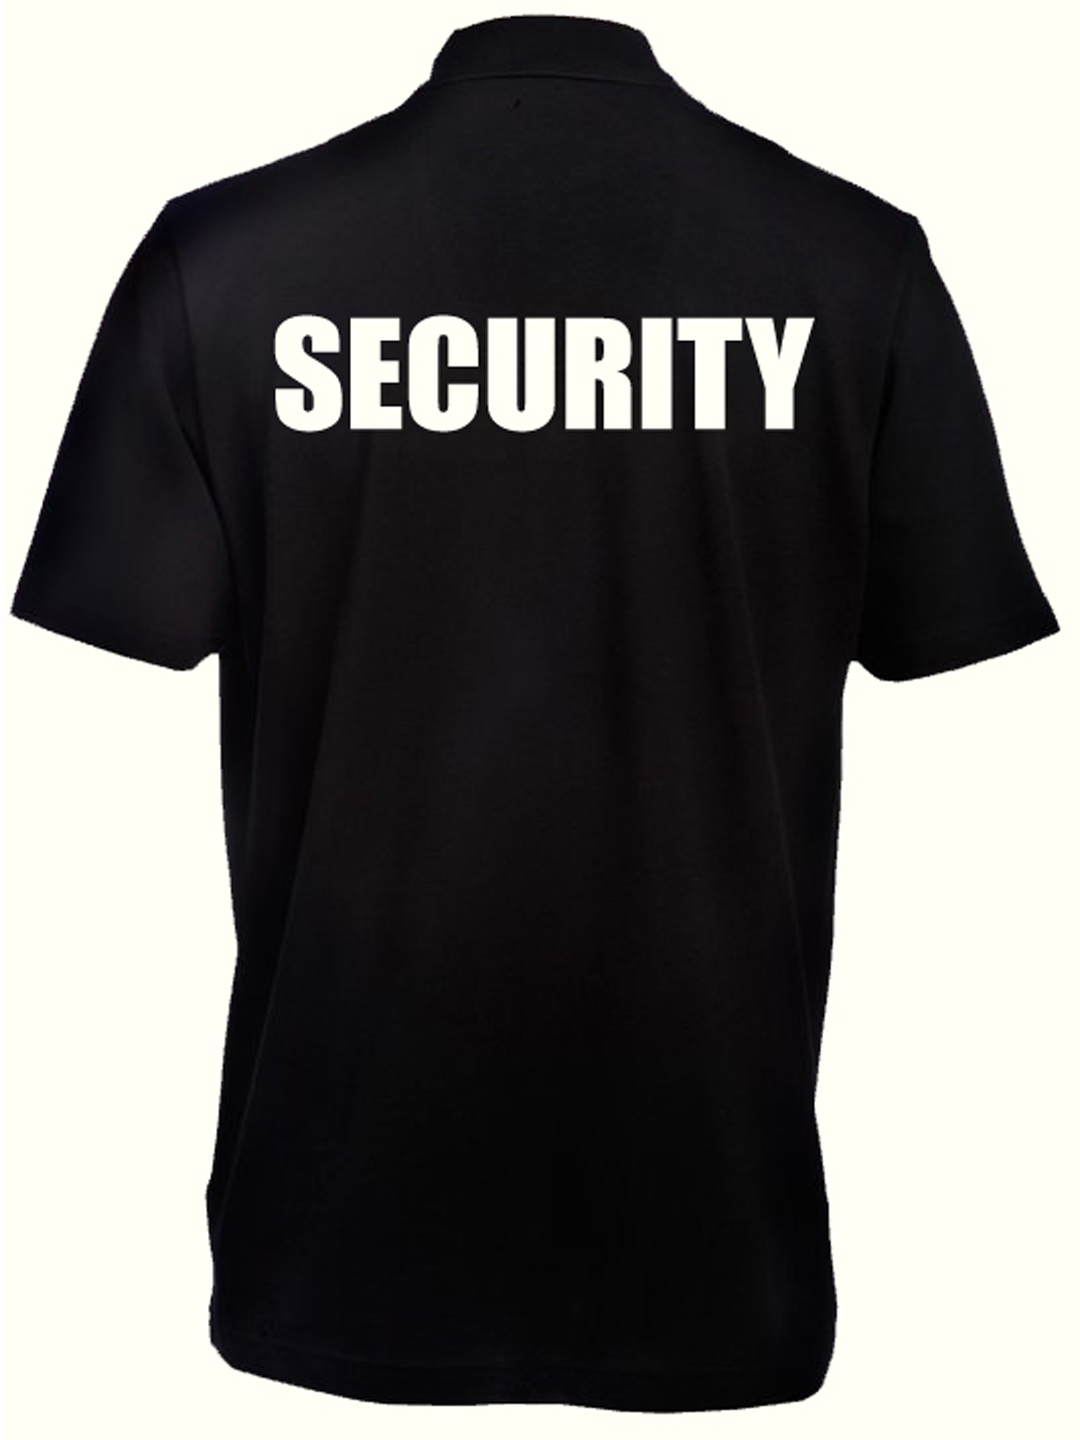 Security, Staff Shirts